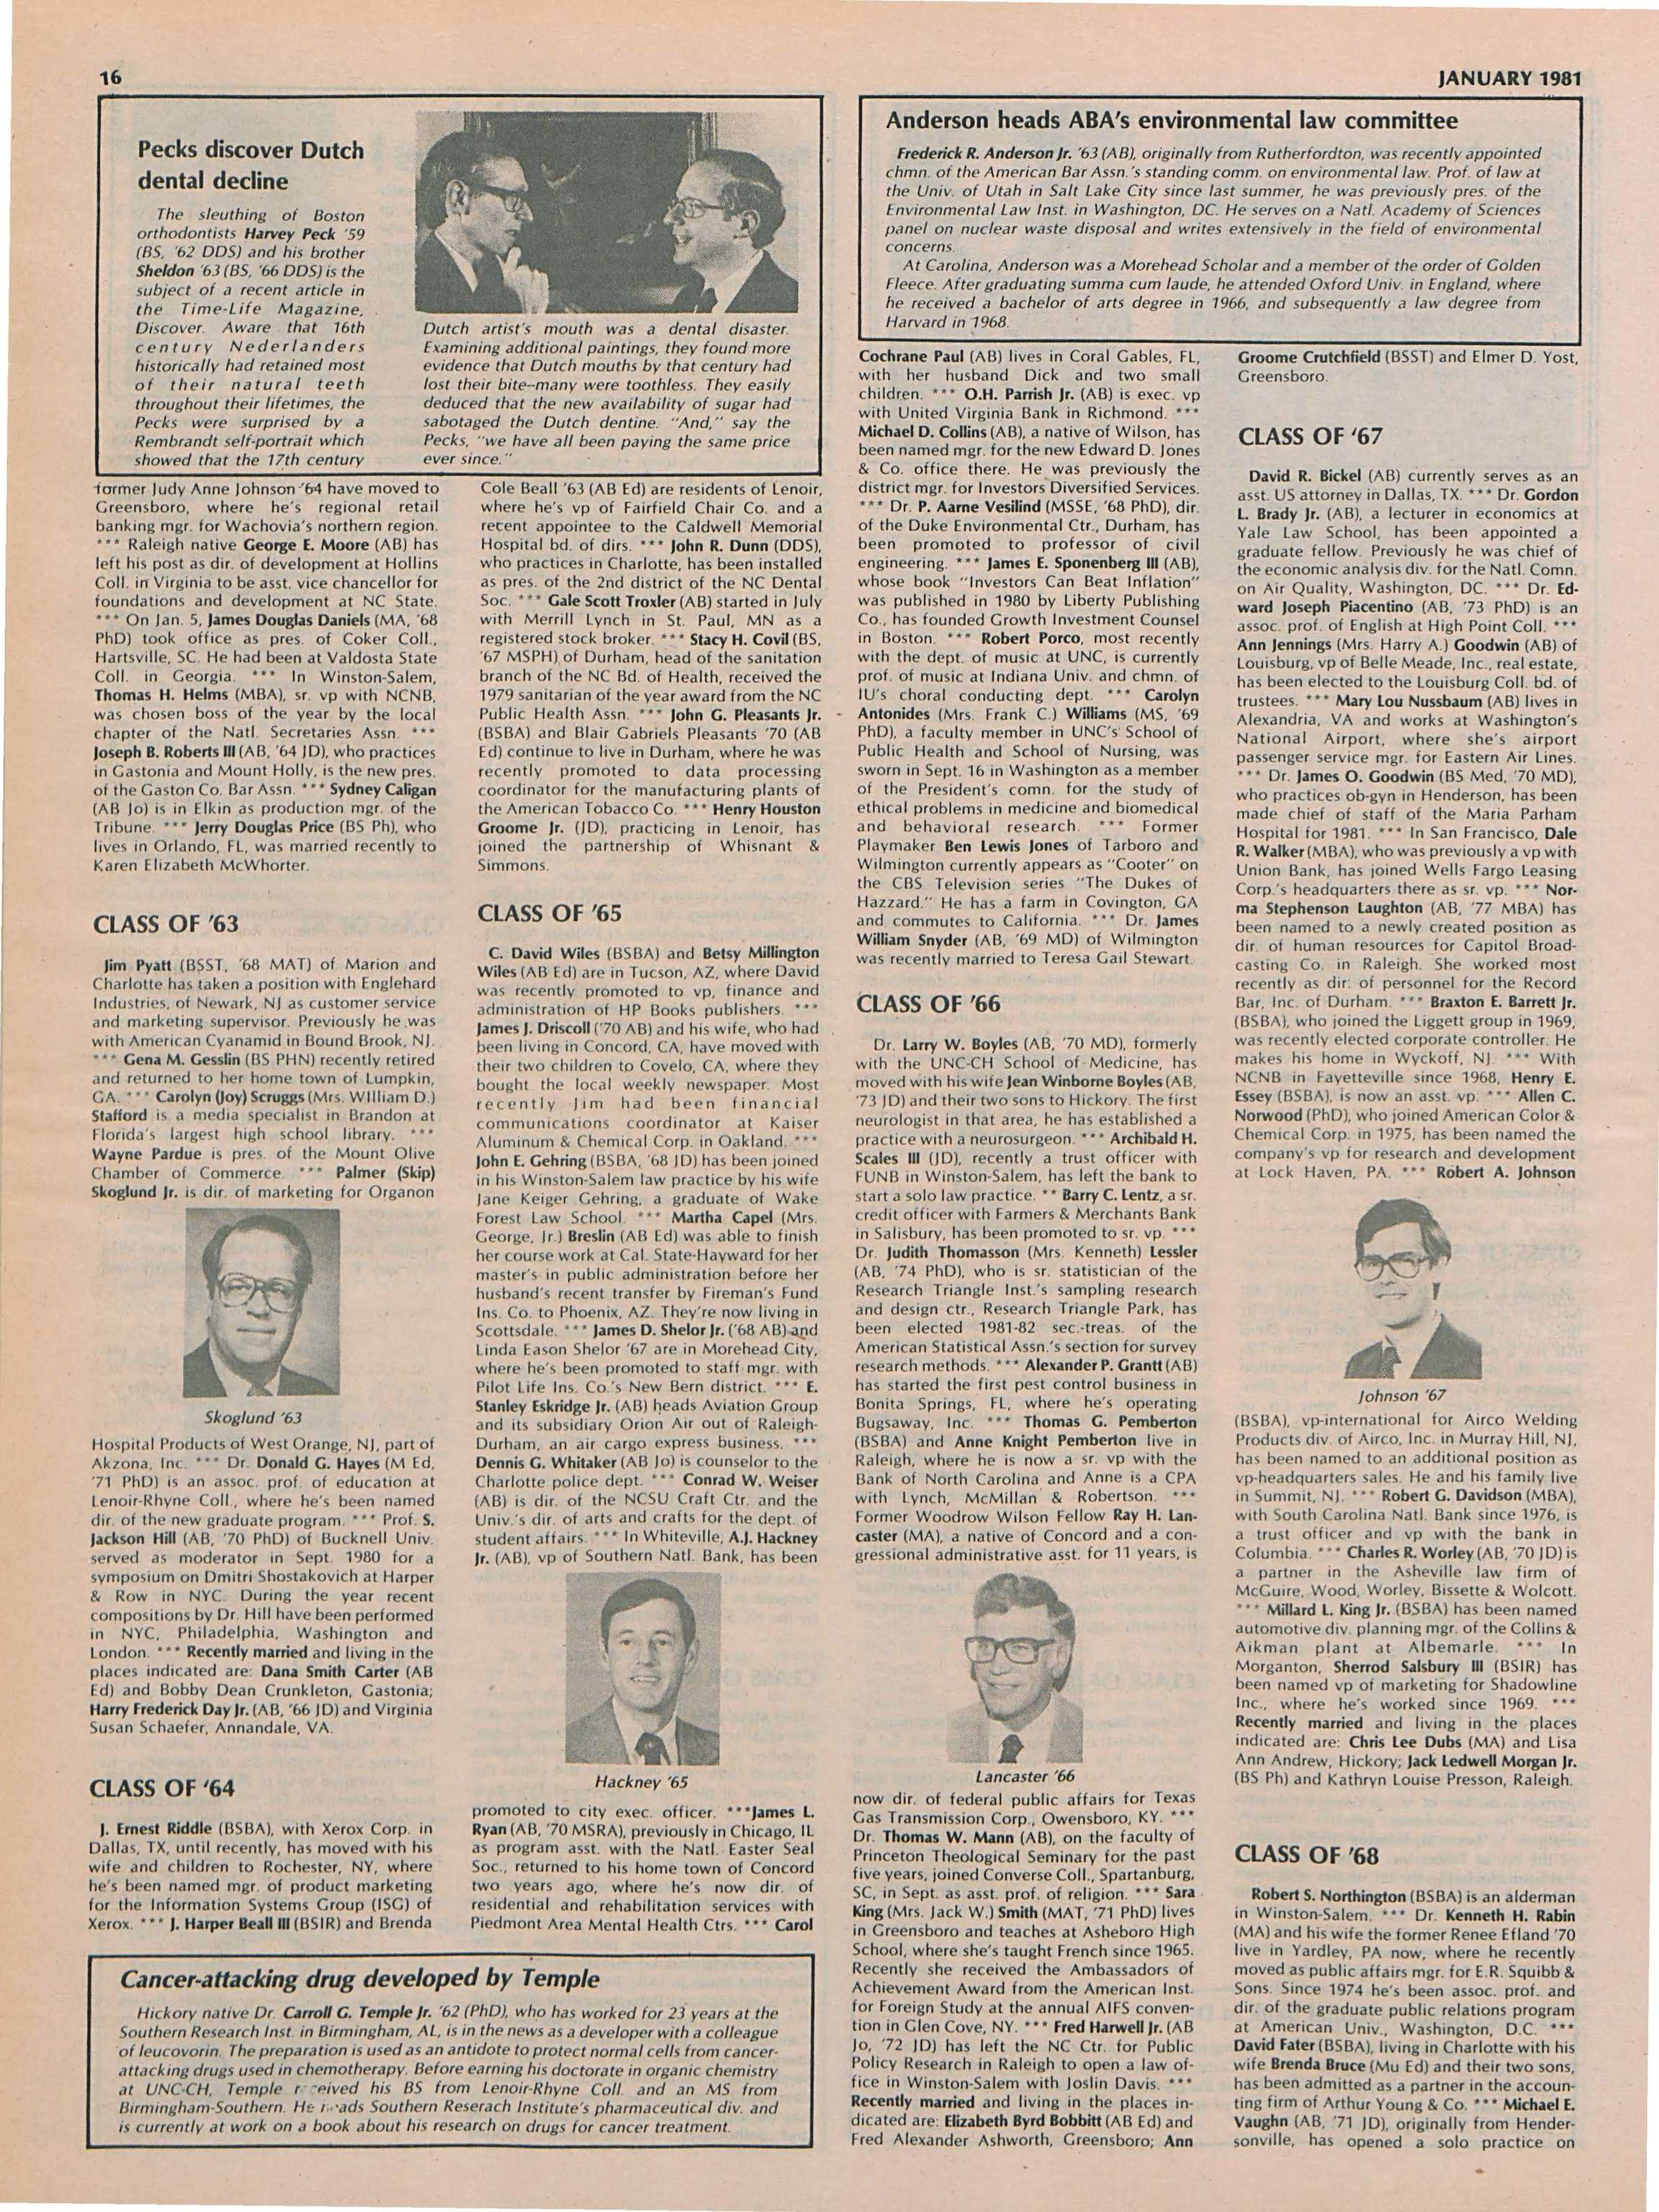 The University Report - January 1981 - page 17